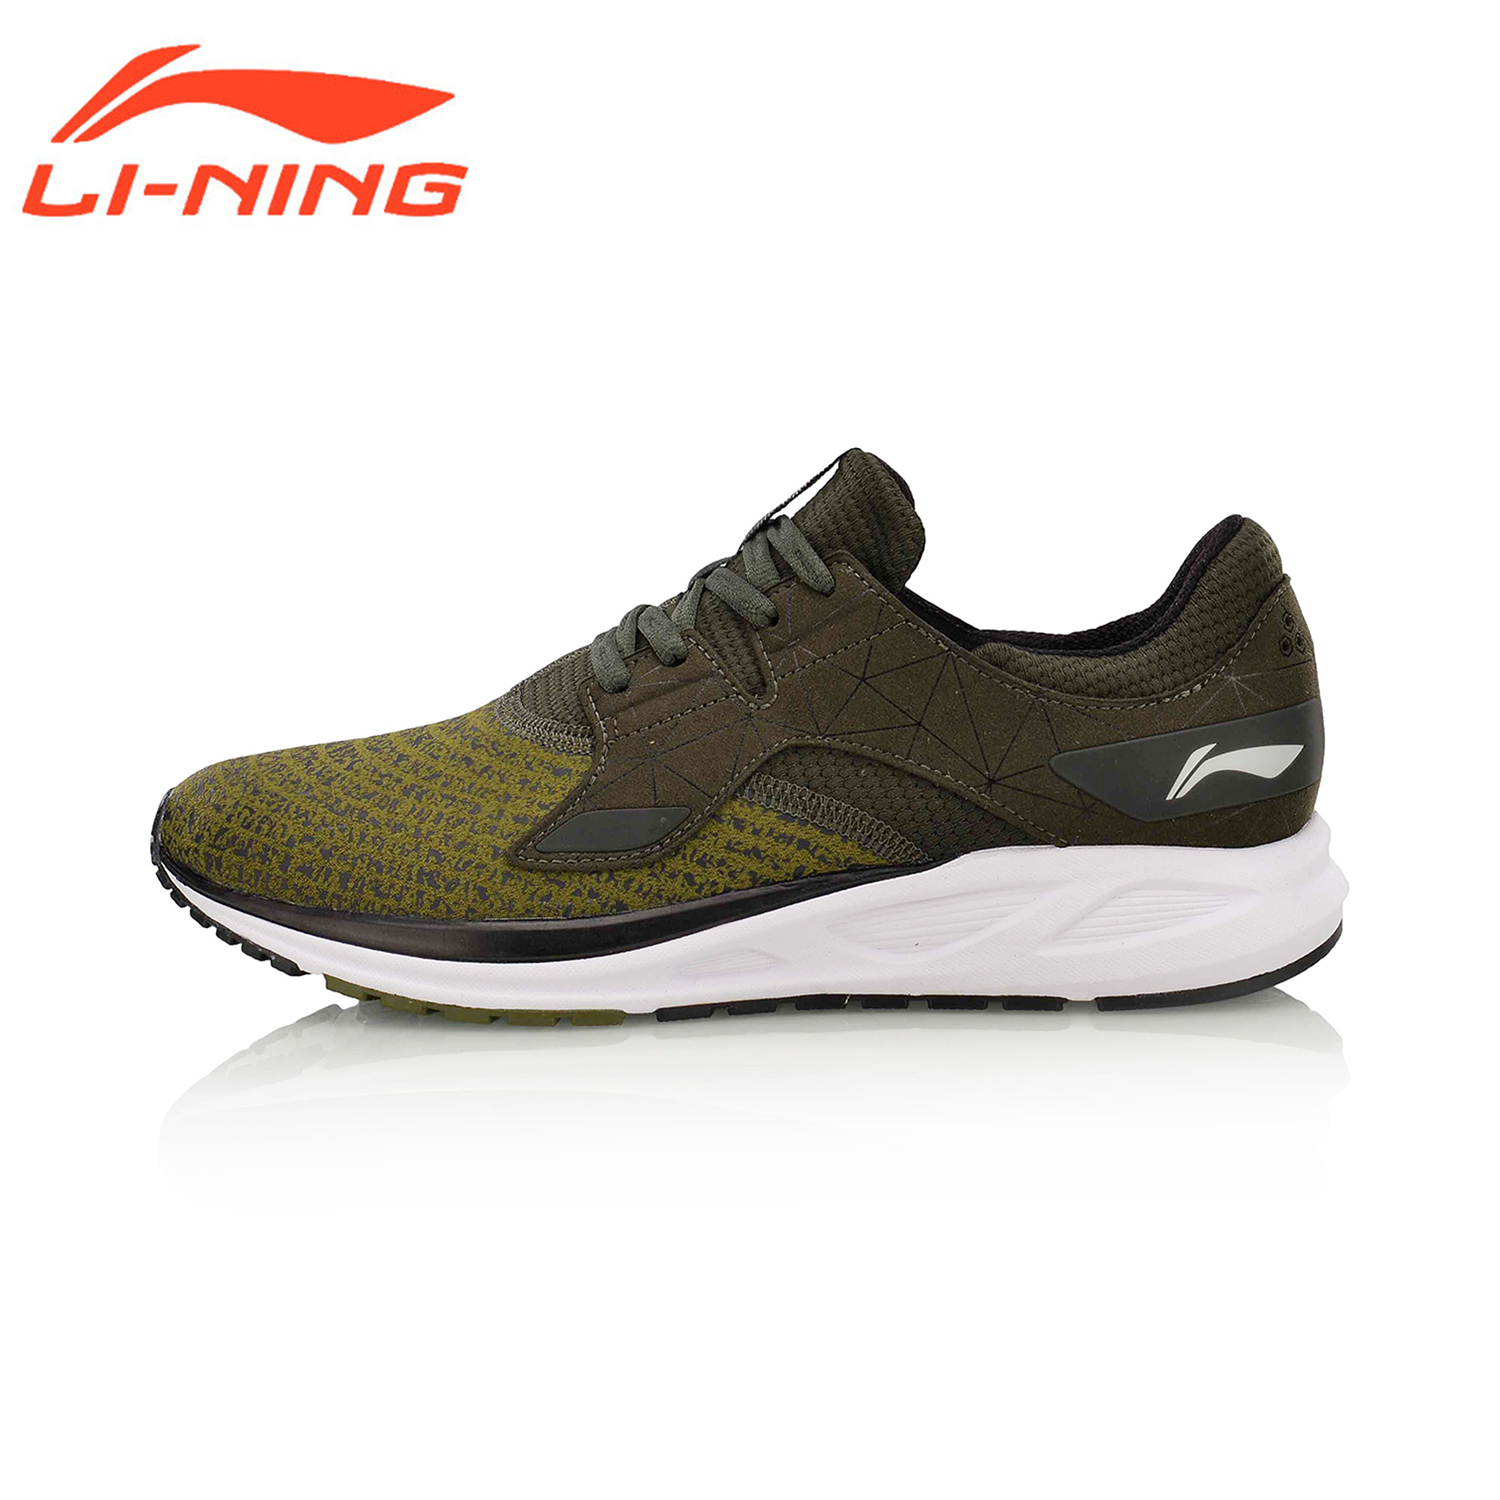 Li-Ning Men FLASH Light Weight Running Shoes Breathable LiNing Sports Athletic Walking Shoes Wearable Jogging Sneakers ARBM057 li ning brand men basketball shoes sonicv series professional camouflage sneakers support lining breathable sports shoes abam019